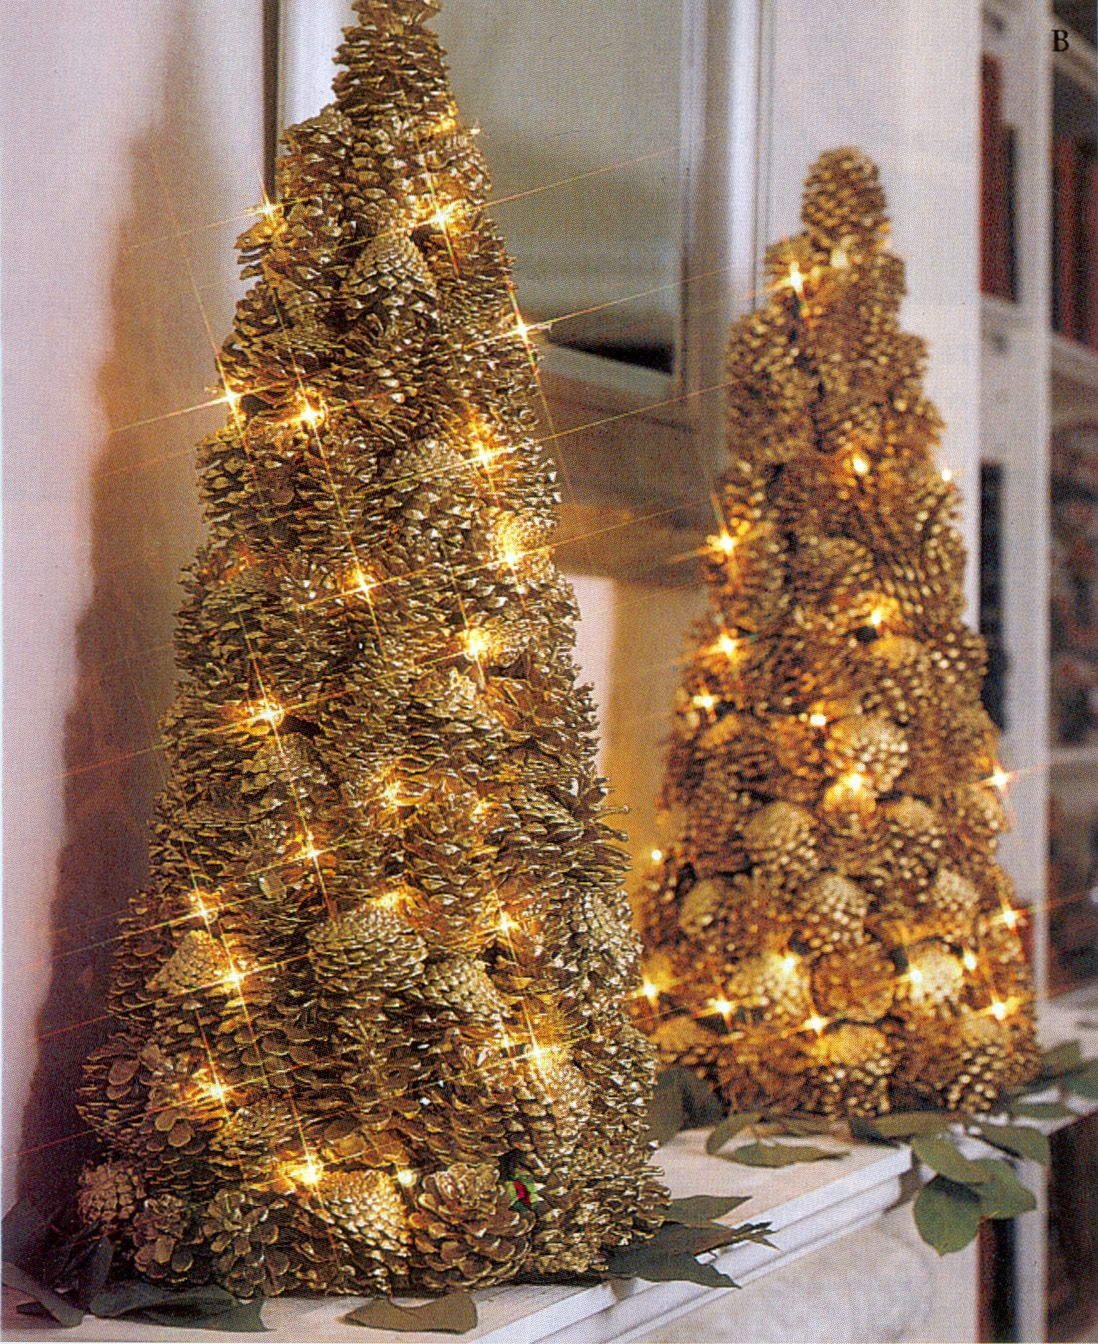 Lighted Pinecone Trees | Christmas 2 | Pinterest | Christmas ...